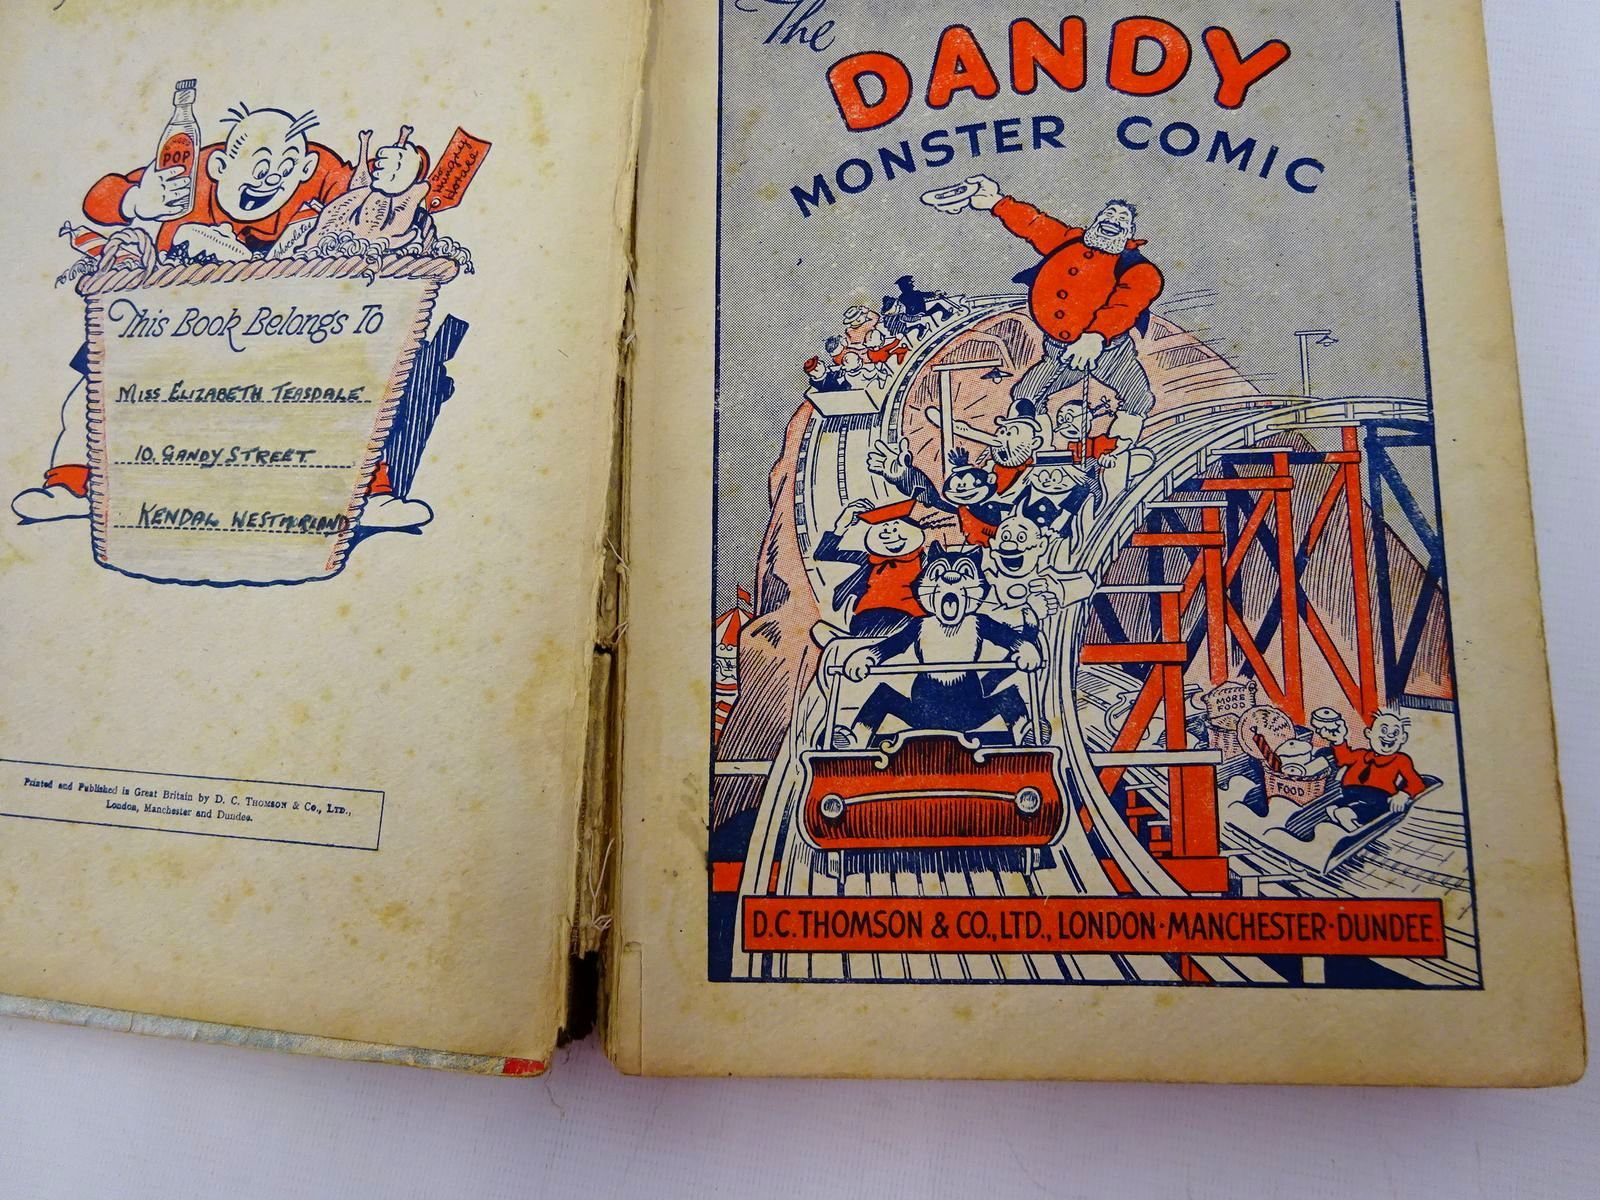 Photo of THE DANDY MONSTER COMIC 1942 published by D.C. Thomson & Co Ltd. (STOCK CODE: 2129020)  for sale by Stella & Rose's Books